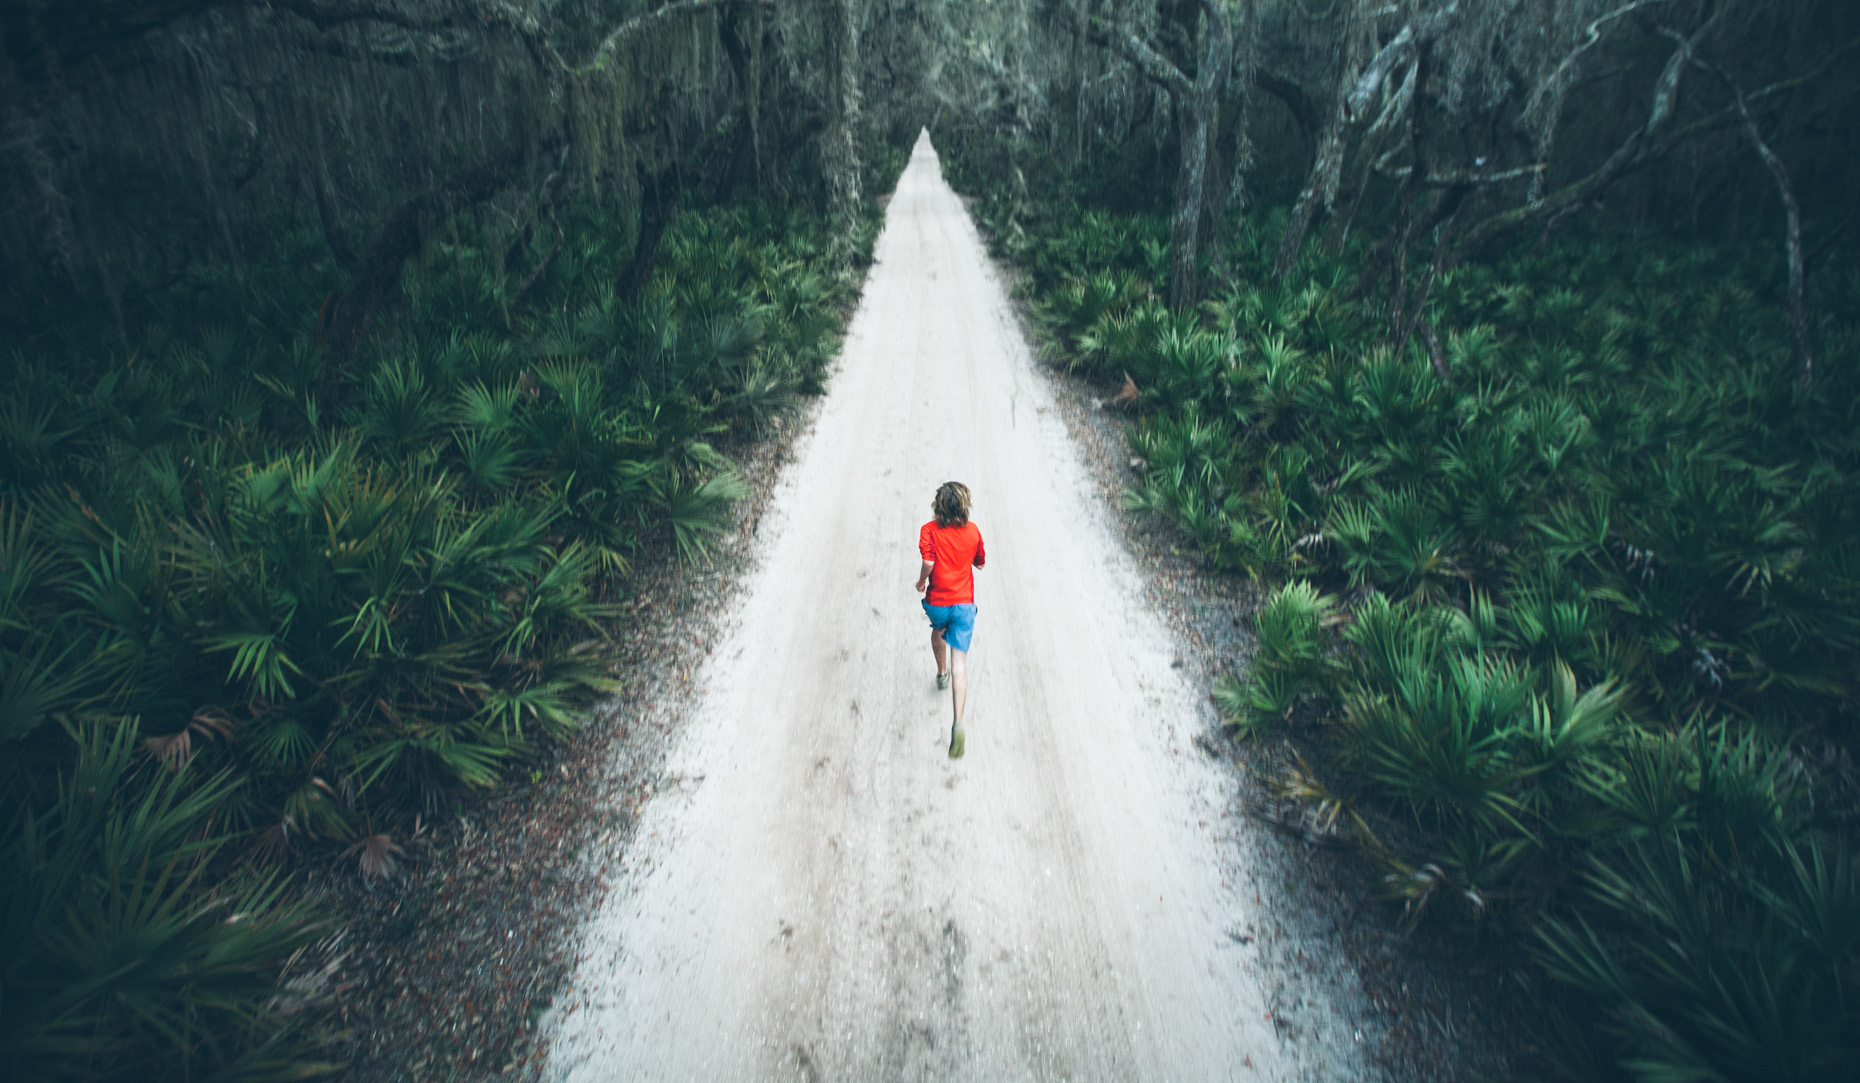 Adventure and outdoor lifestyle photogaph by Forest Woodward Canyon Woodward Running on Cumberland Island off the coast of Georgia